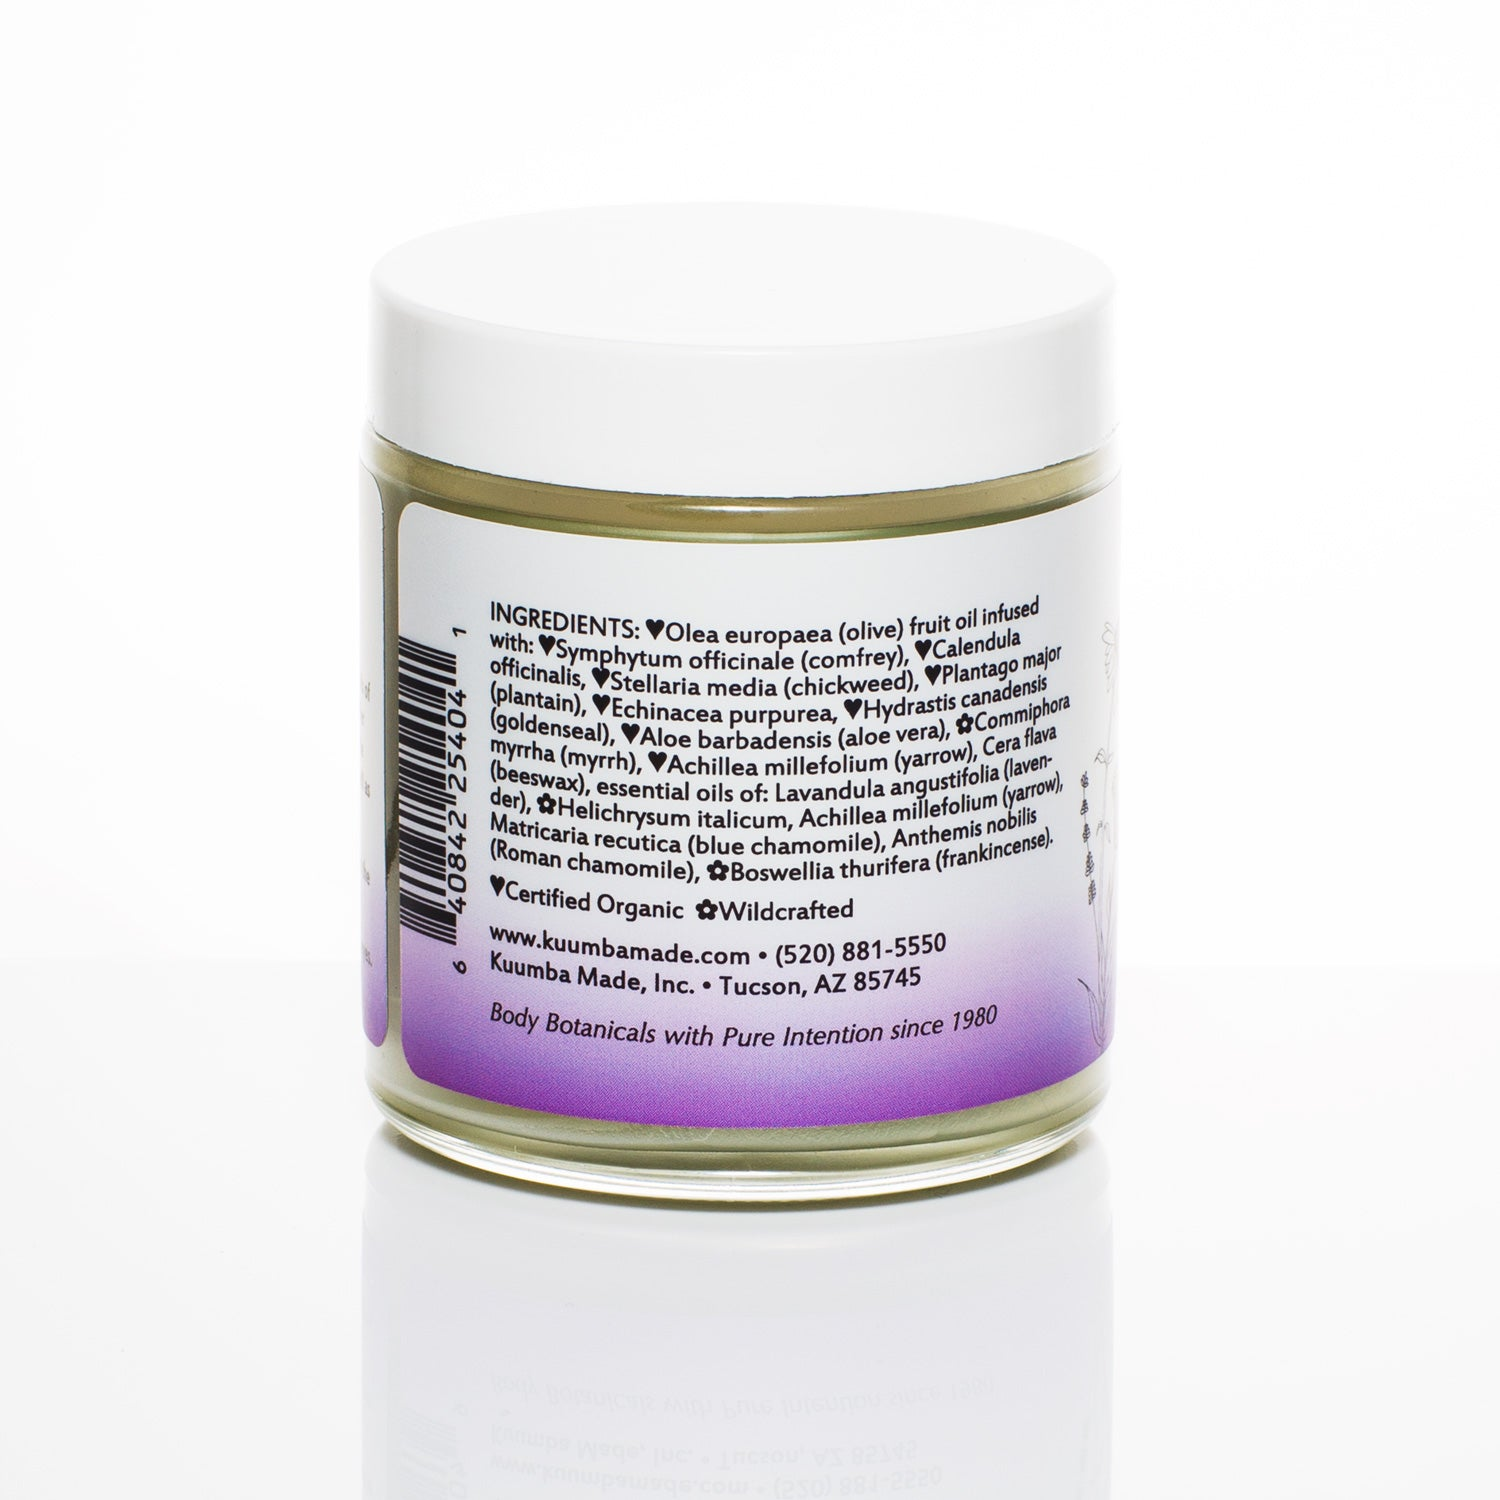 Scar Care Herbal Salve ingredients from Kuumba Made